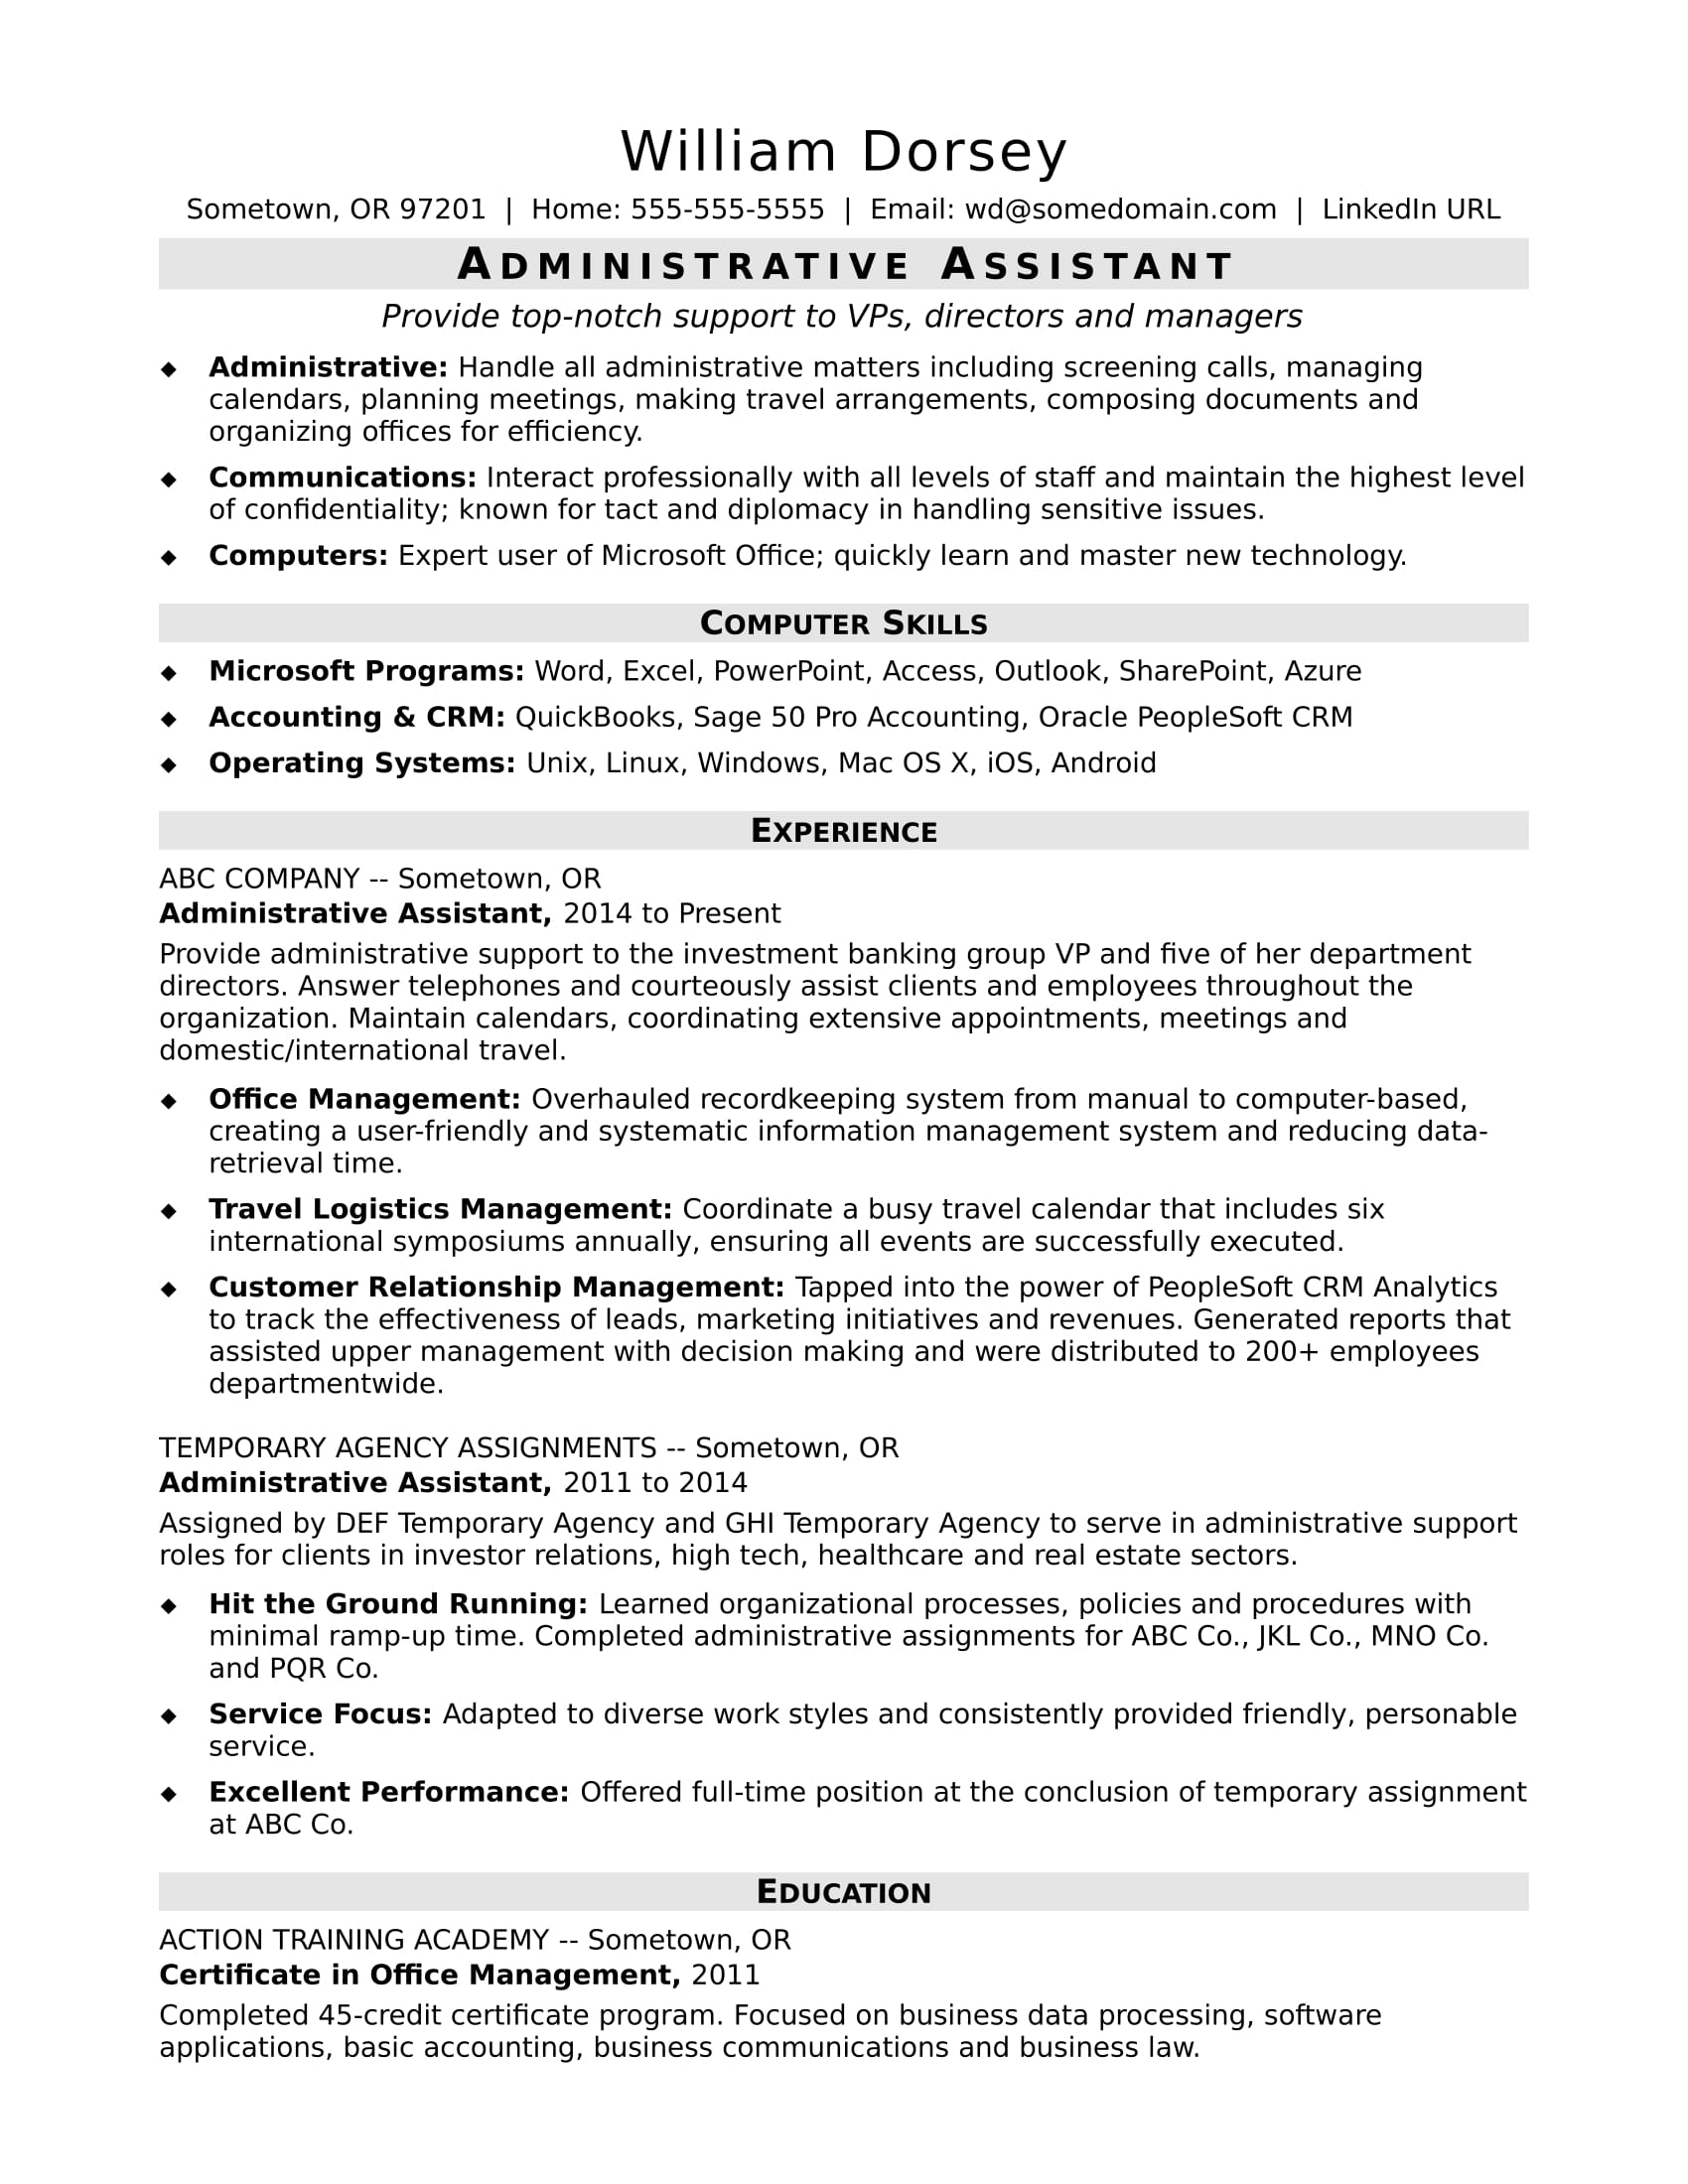 Wonderful Sample Resume For A Midlevel Administrative Assistant